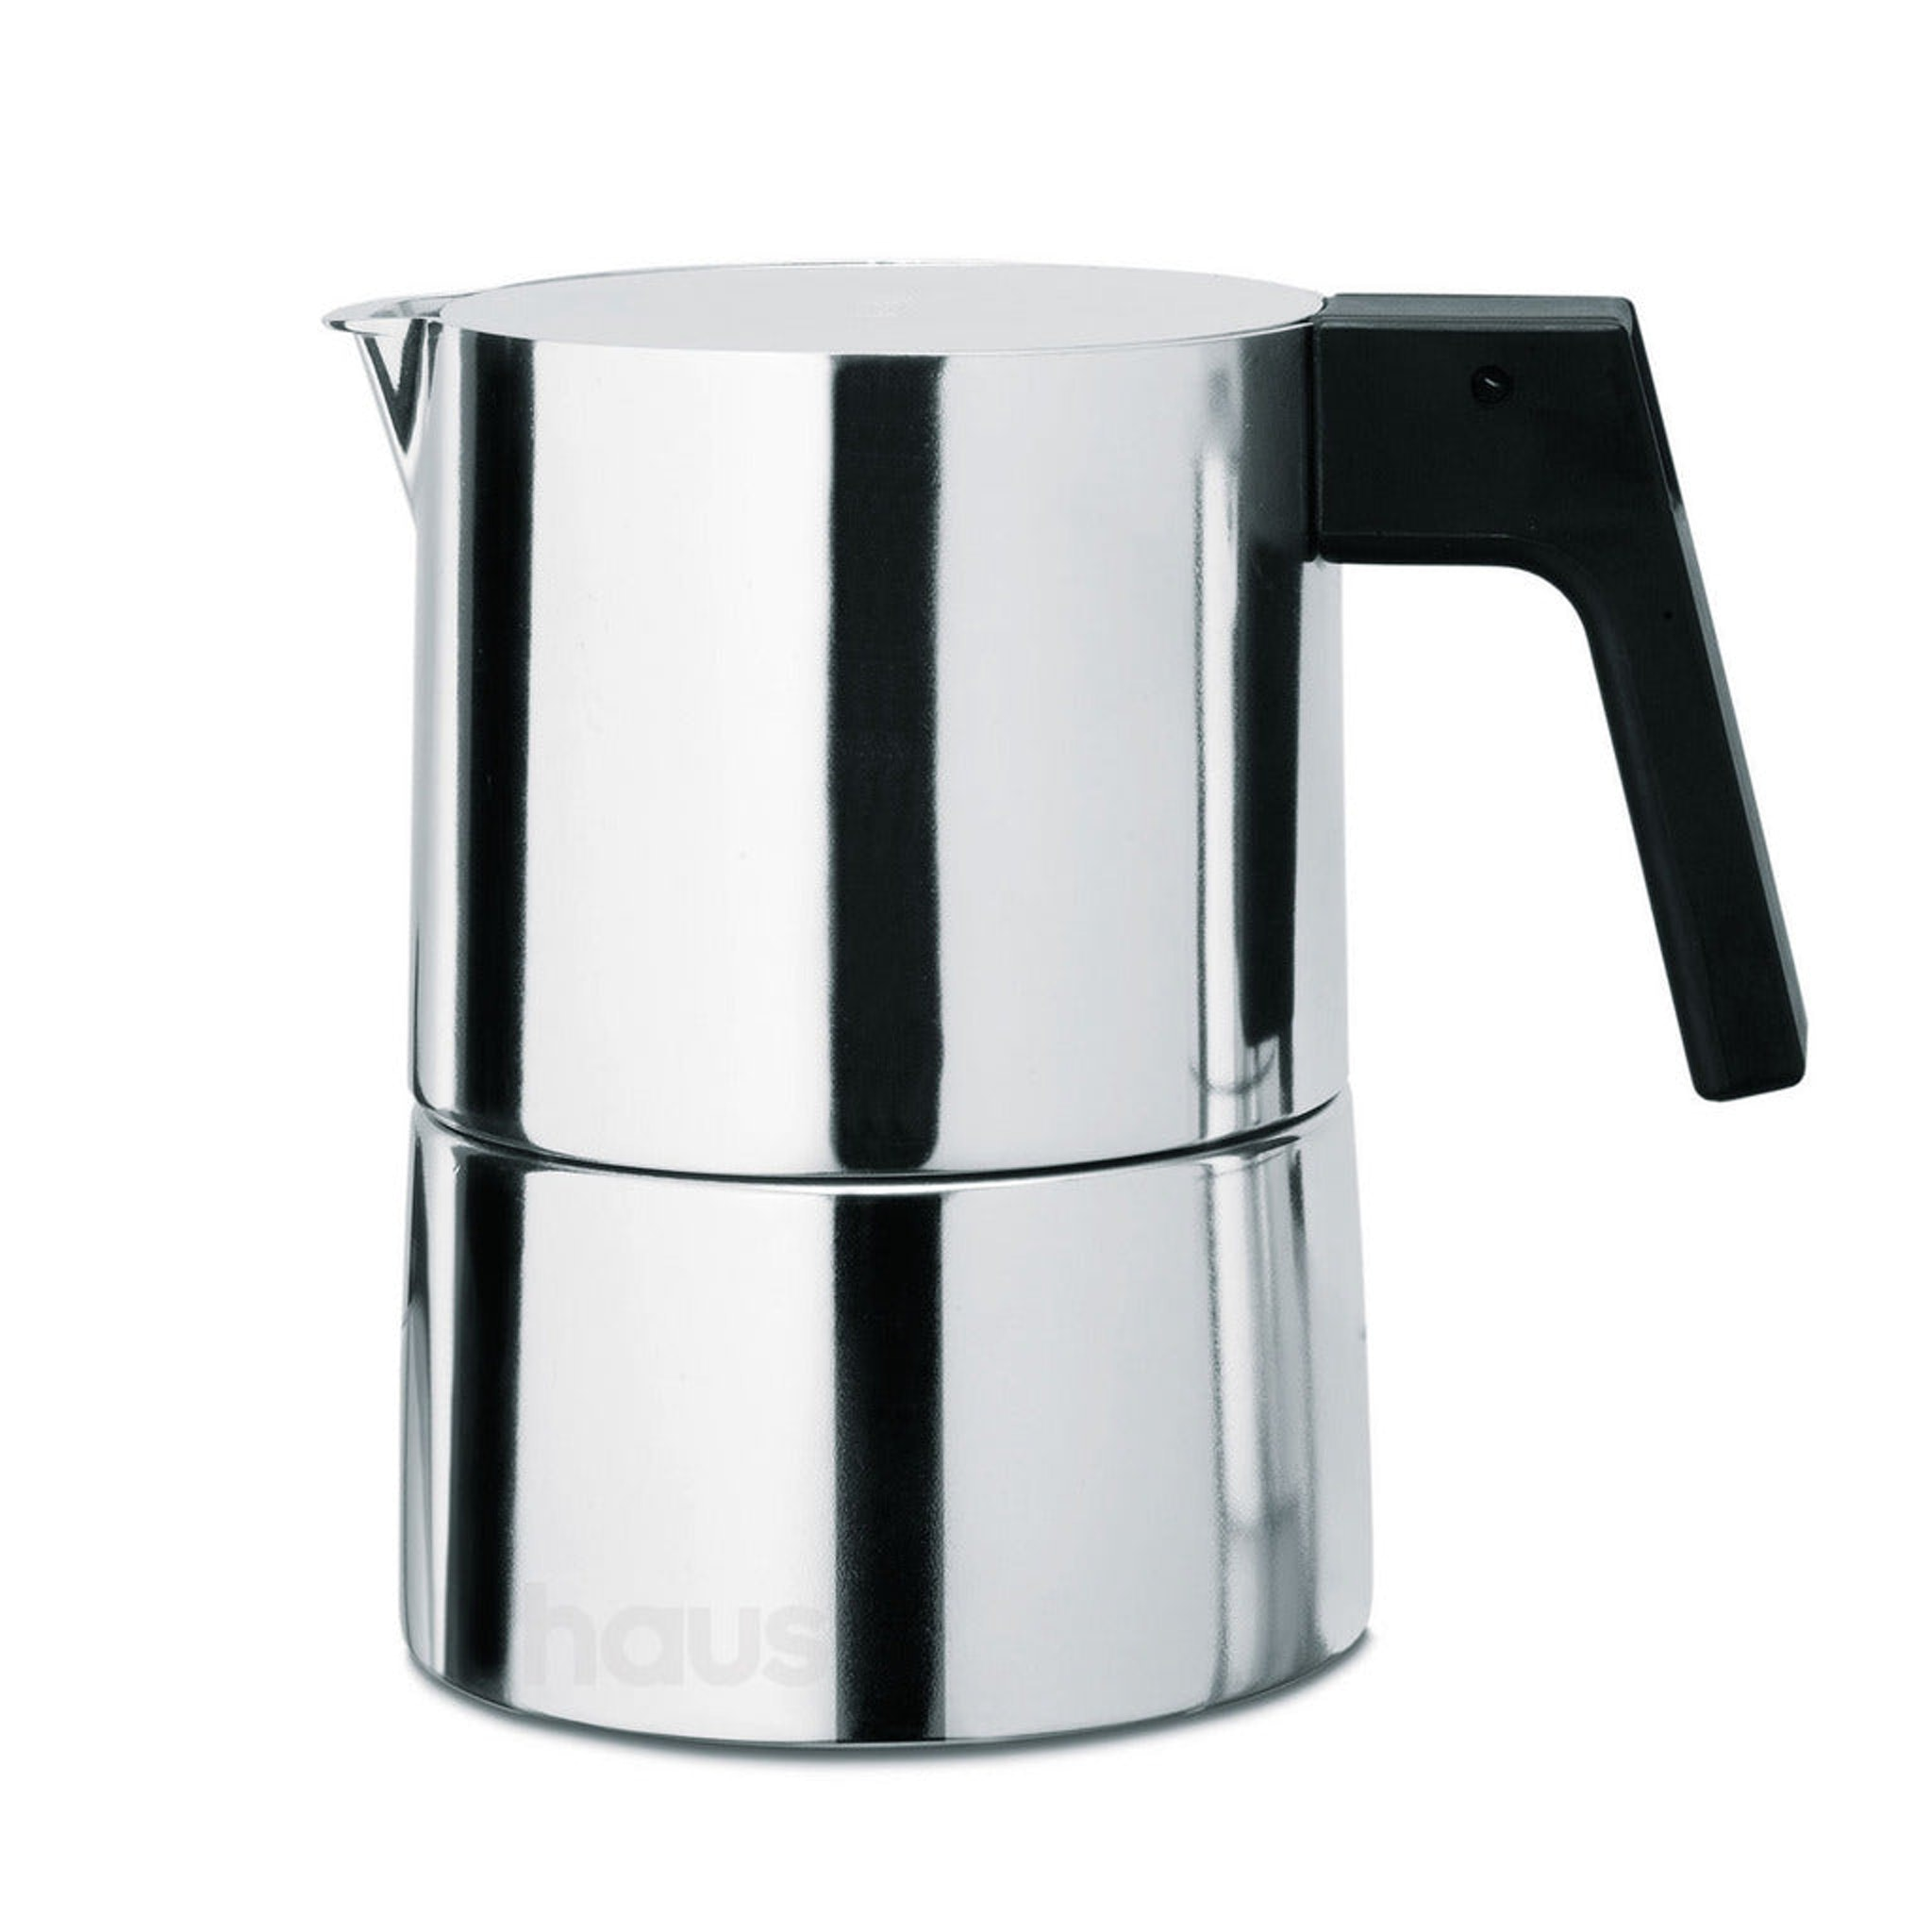 Pina Espresso Maker by Piero Lissoni for Alessi